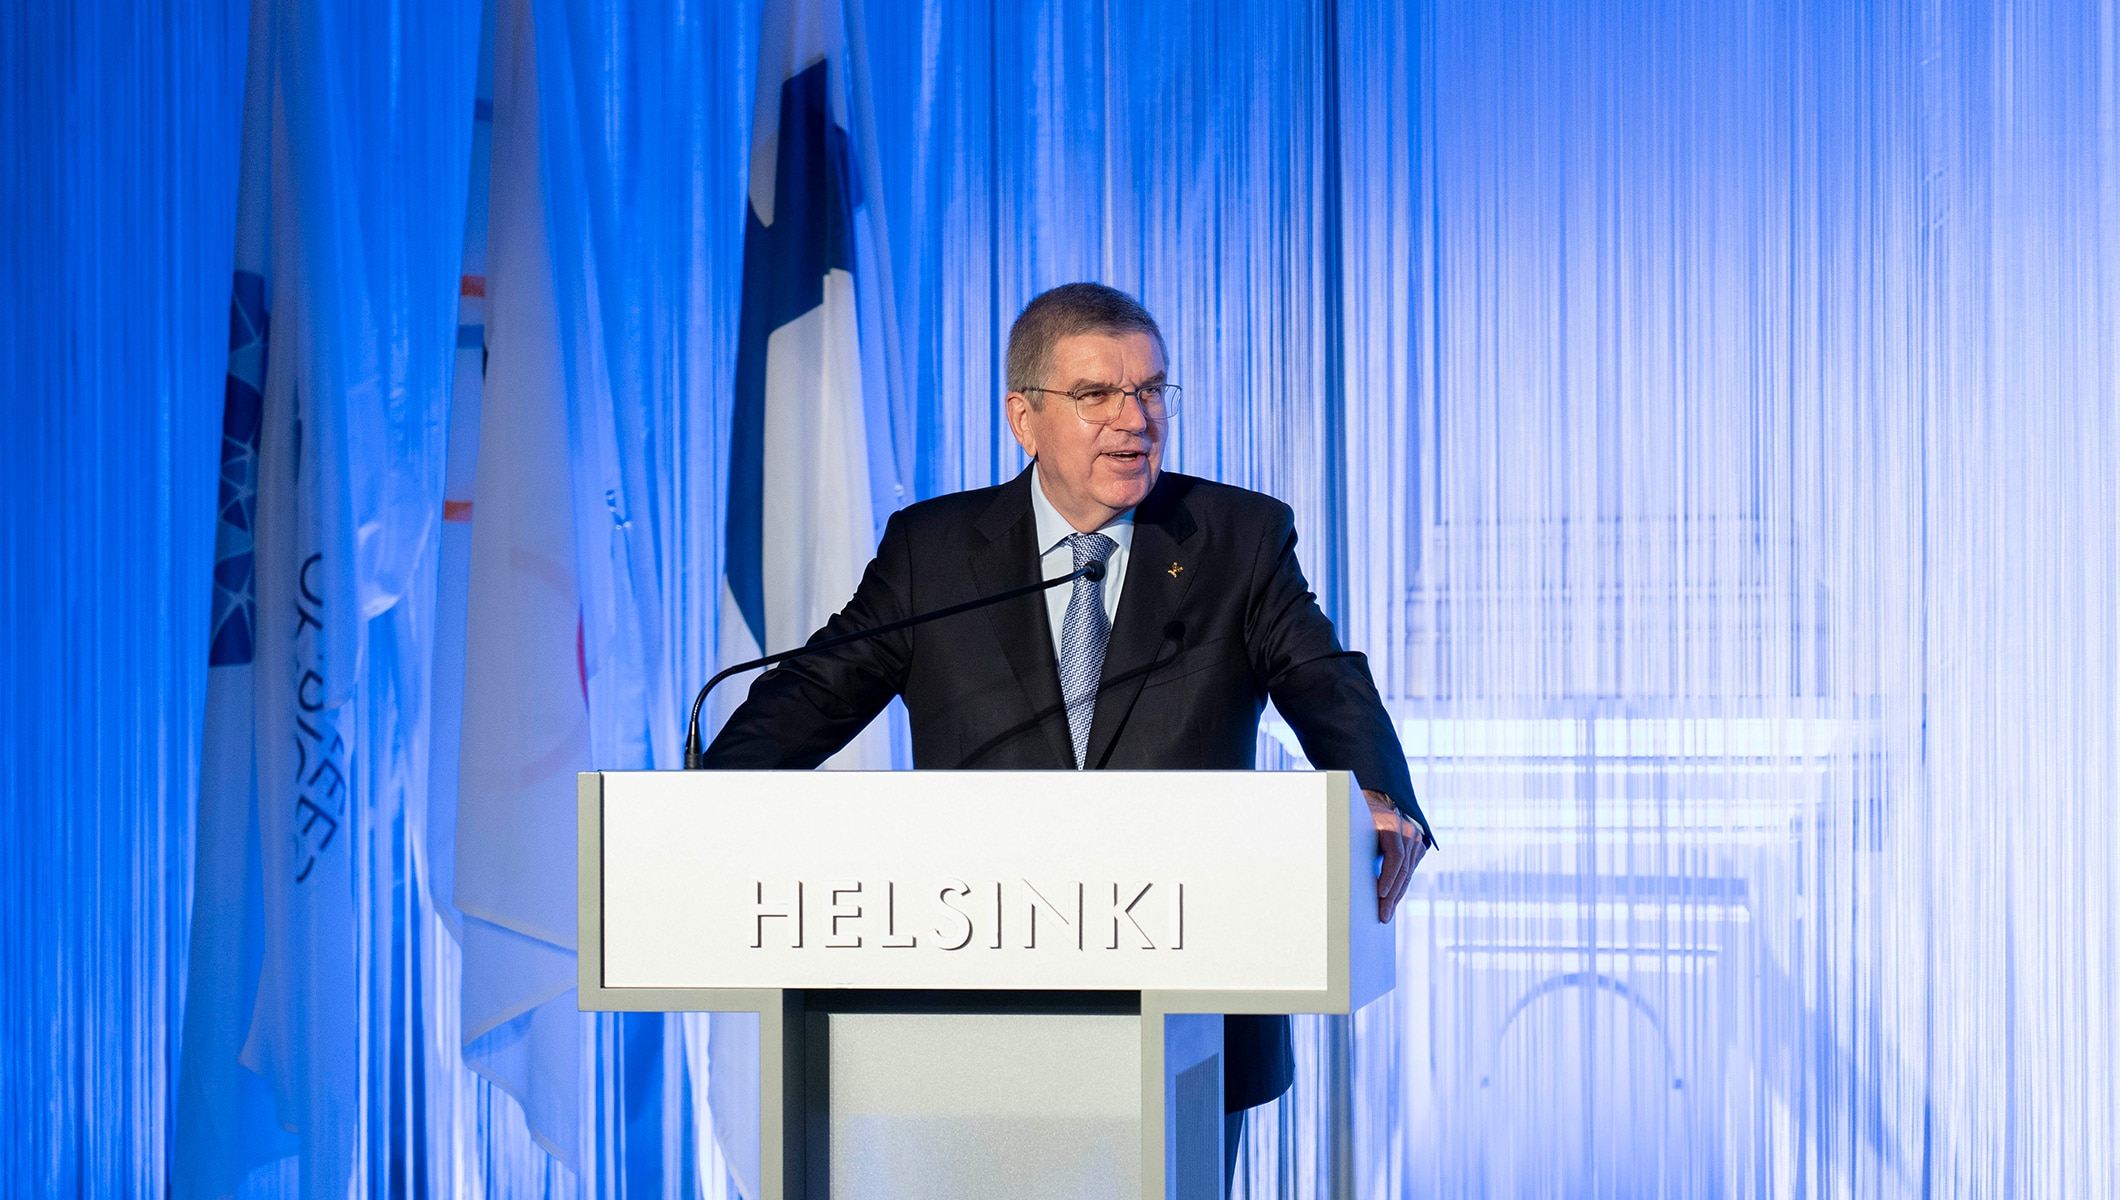 IOC President Thomas Bach at The New Leaders Forum held in Helsinki